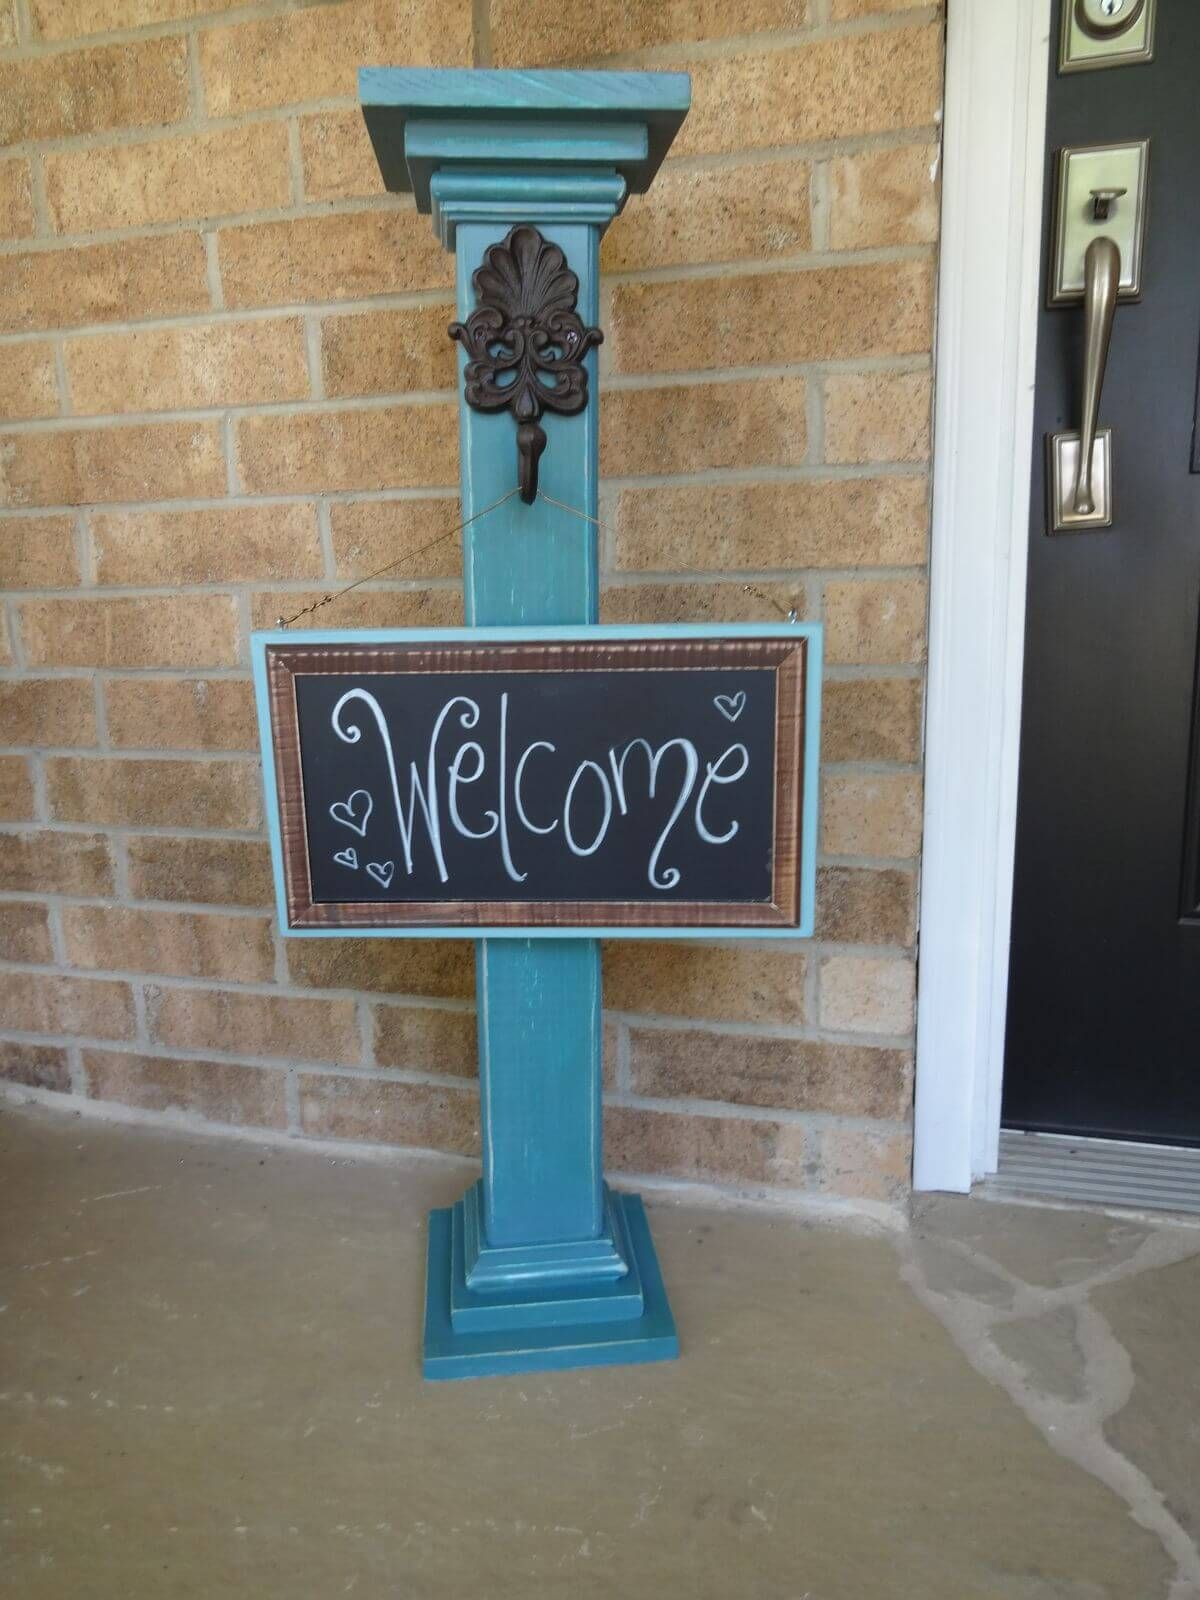 24 Lovely Front Porch Welcome Post Ideas That Will Make Your Guest Feel Greeted Front Porch Decorating Porch Decorating Welcome Post